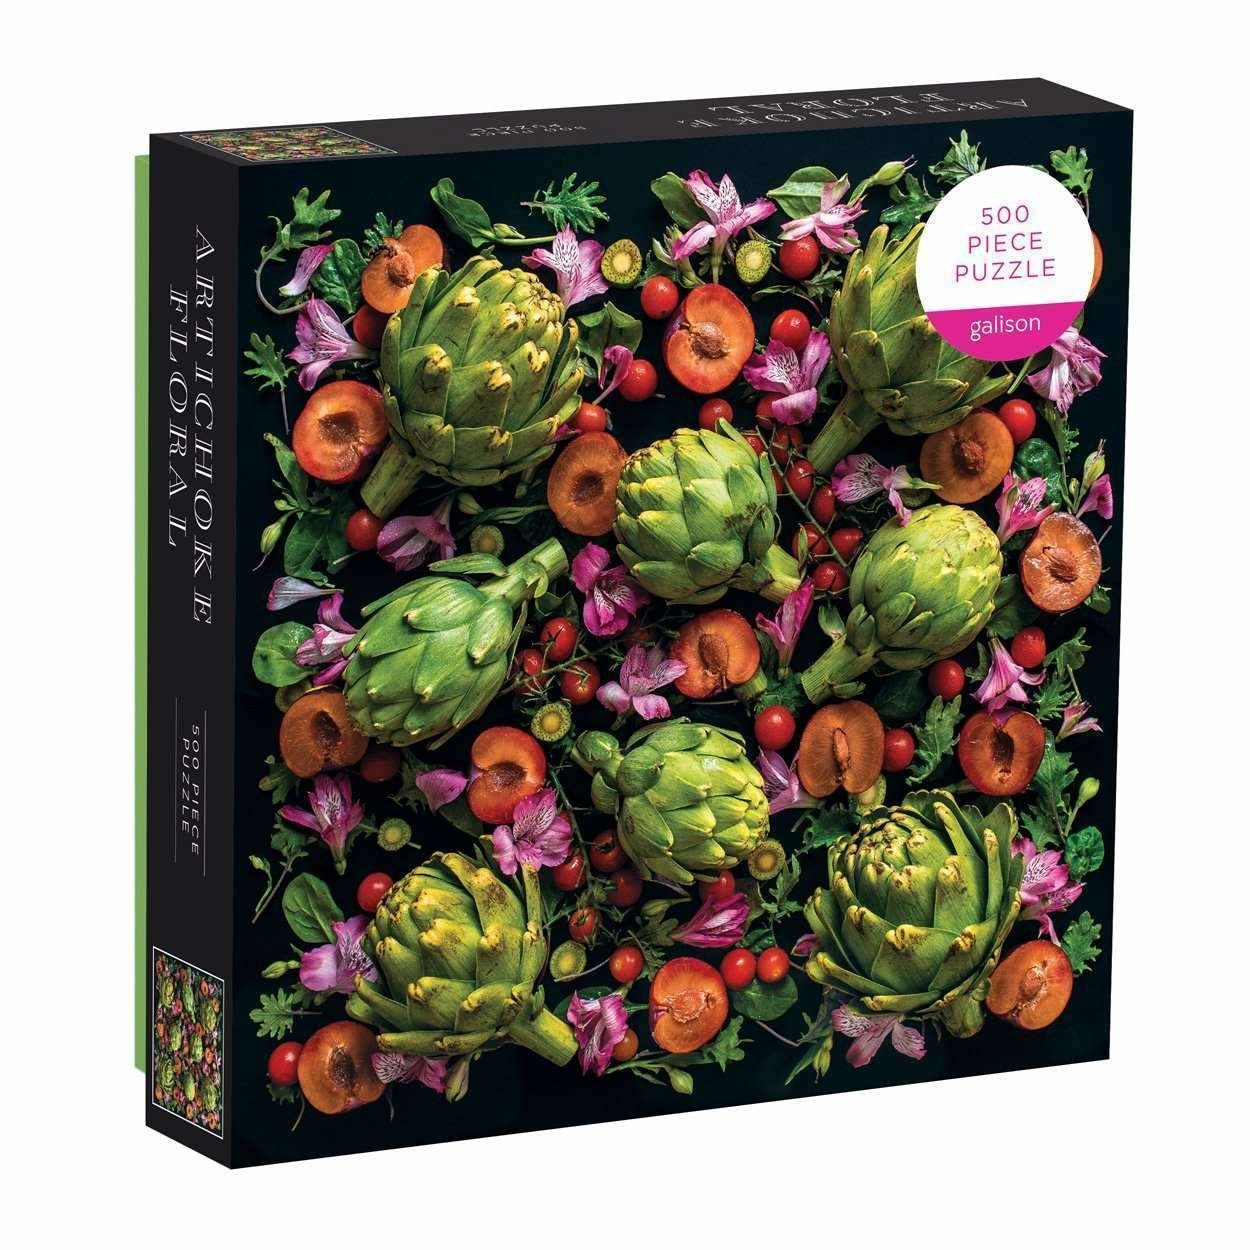 a puzzle of tomatoes, artichokes, and florals